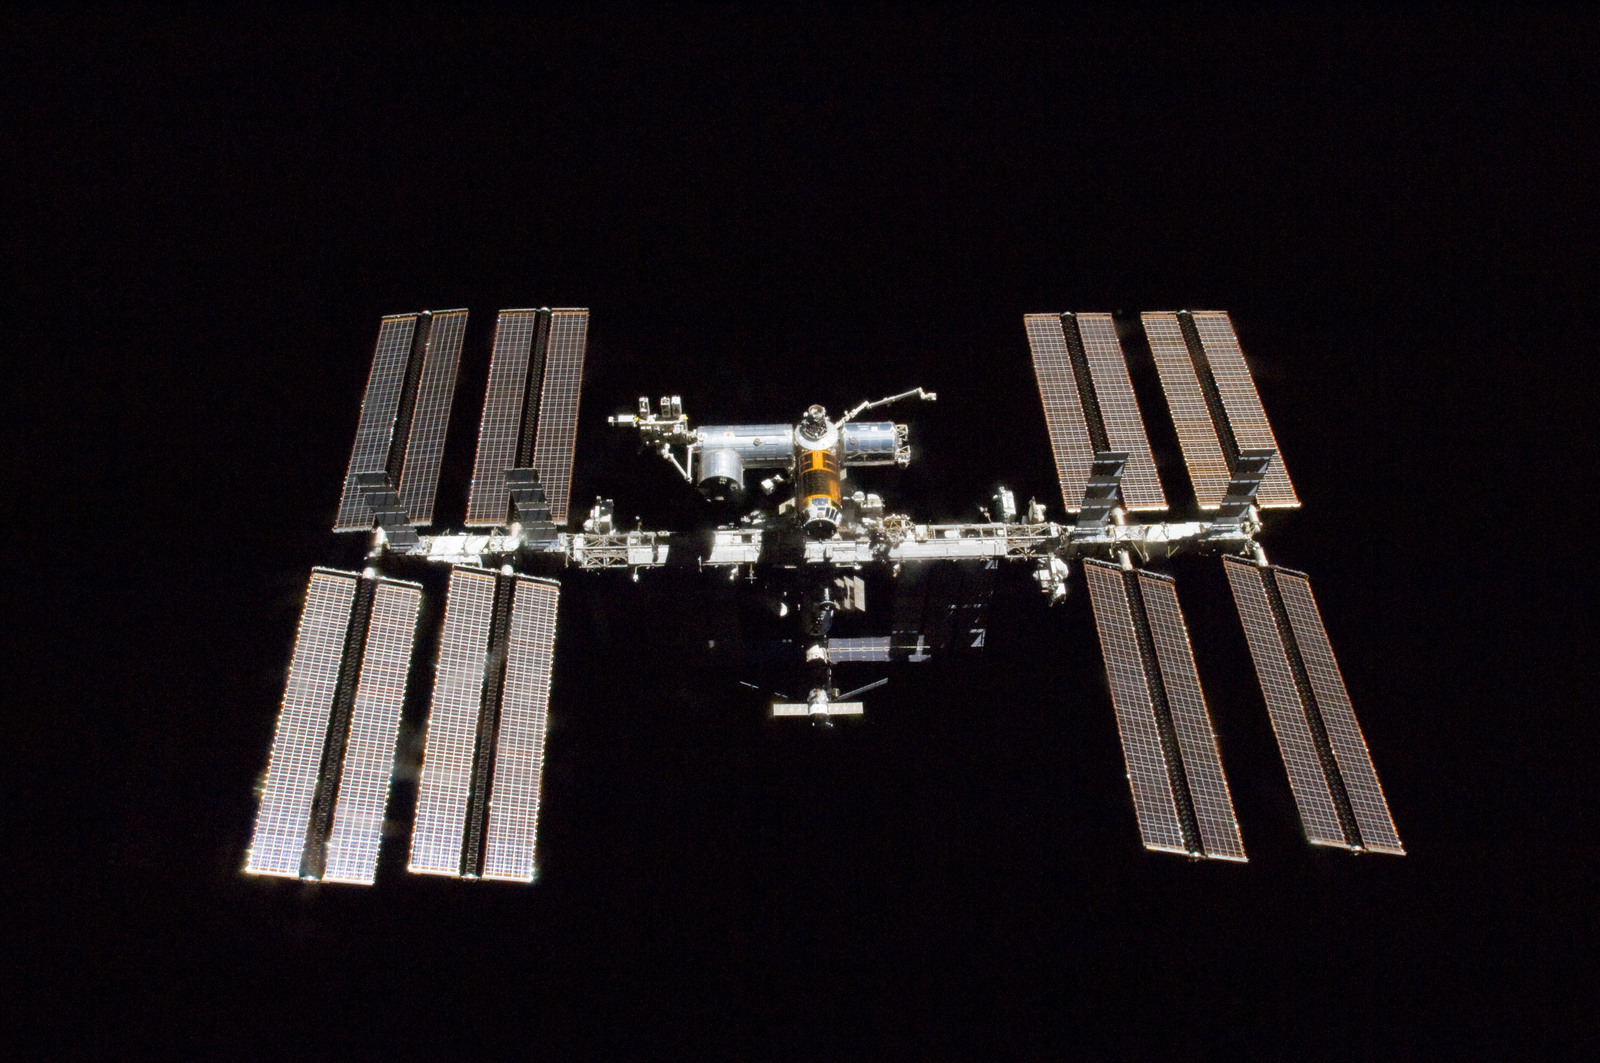 s133E010361 - STS-133 - Fly Around view of the ISS